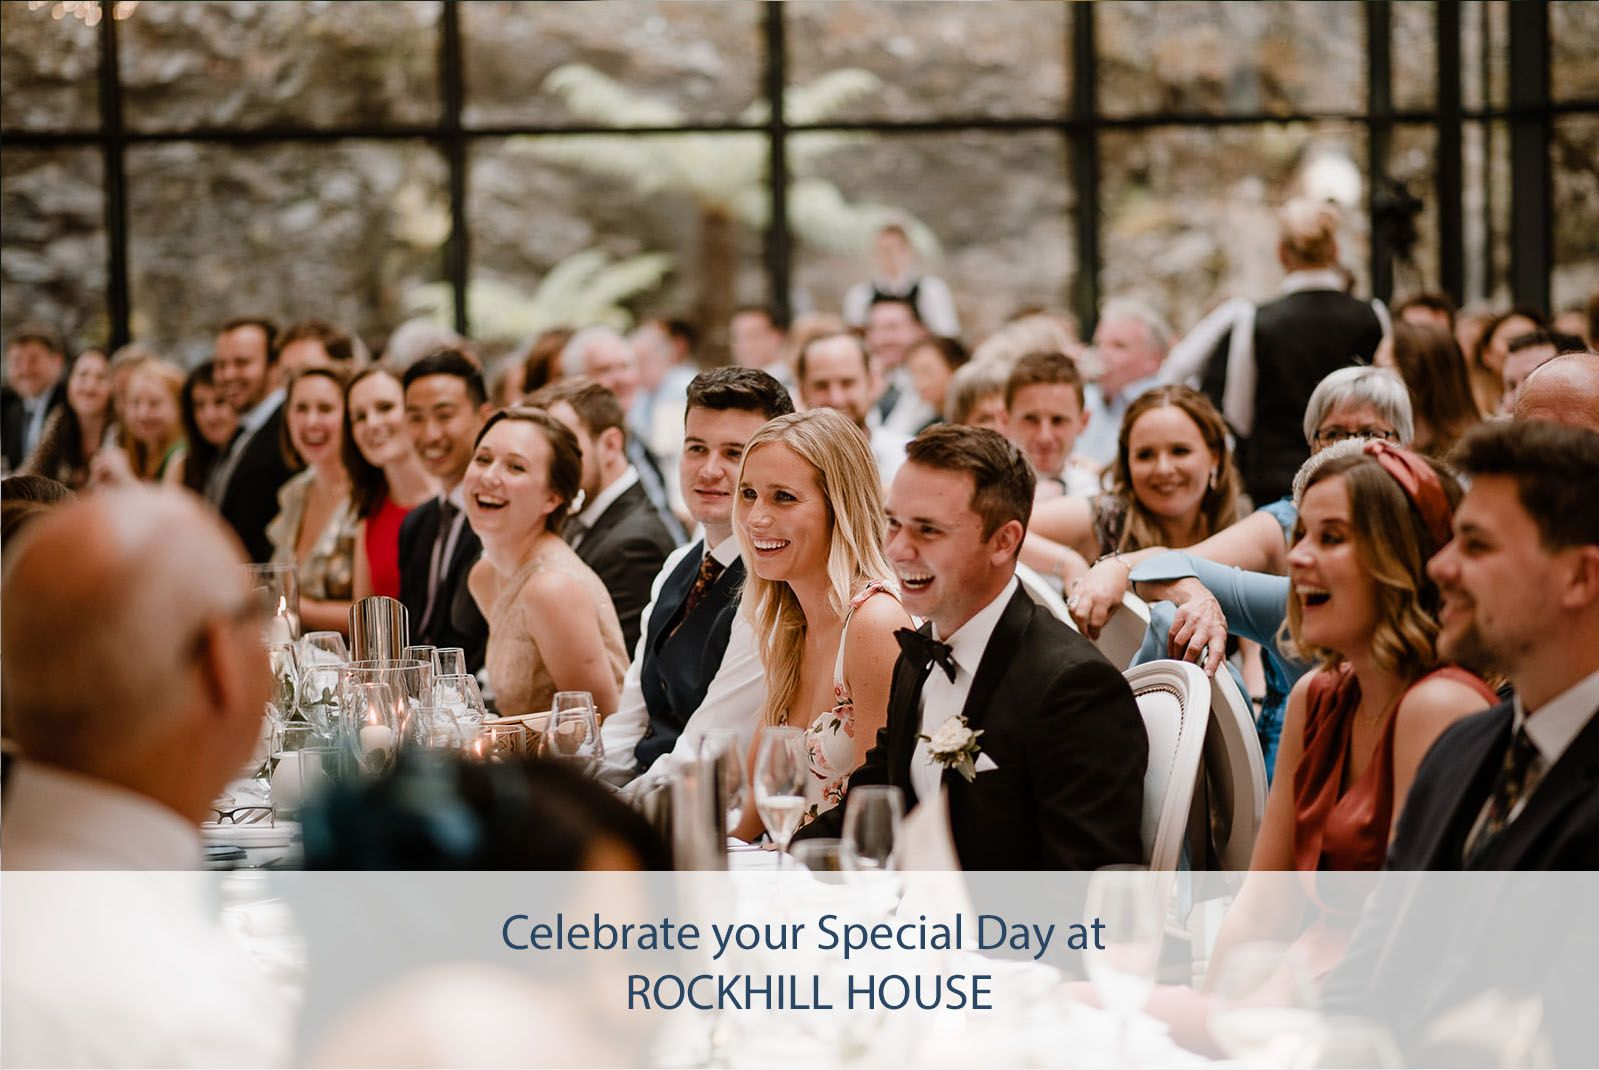 People Rockhill House